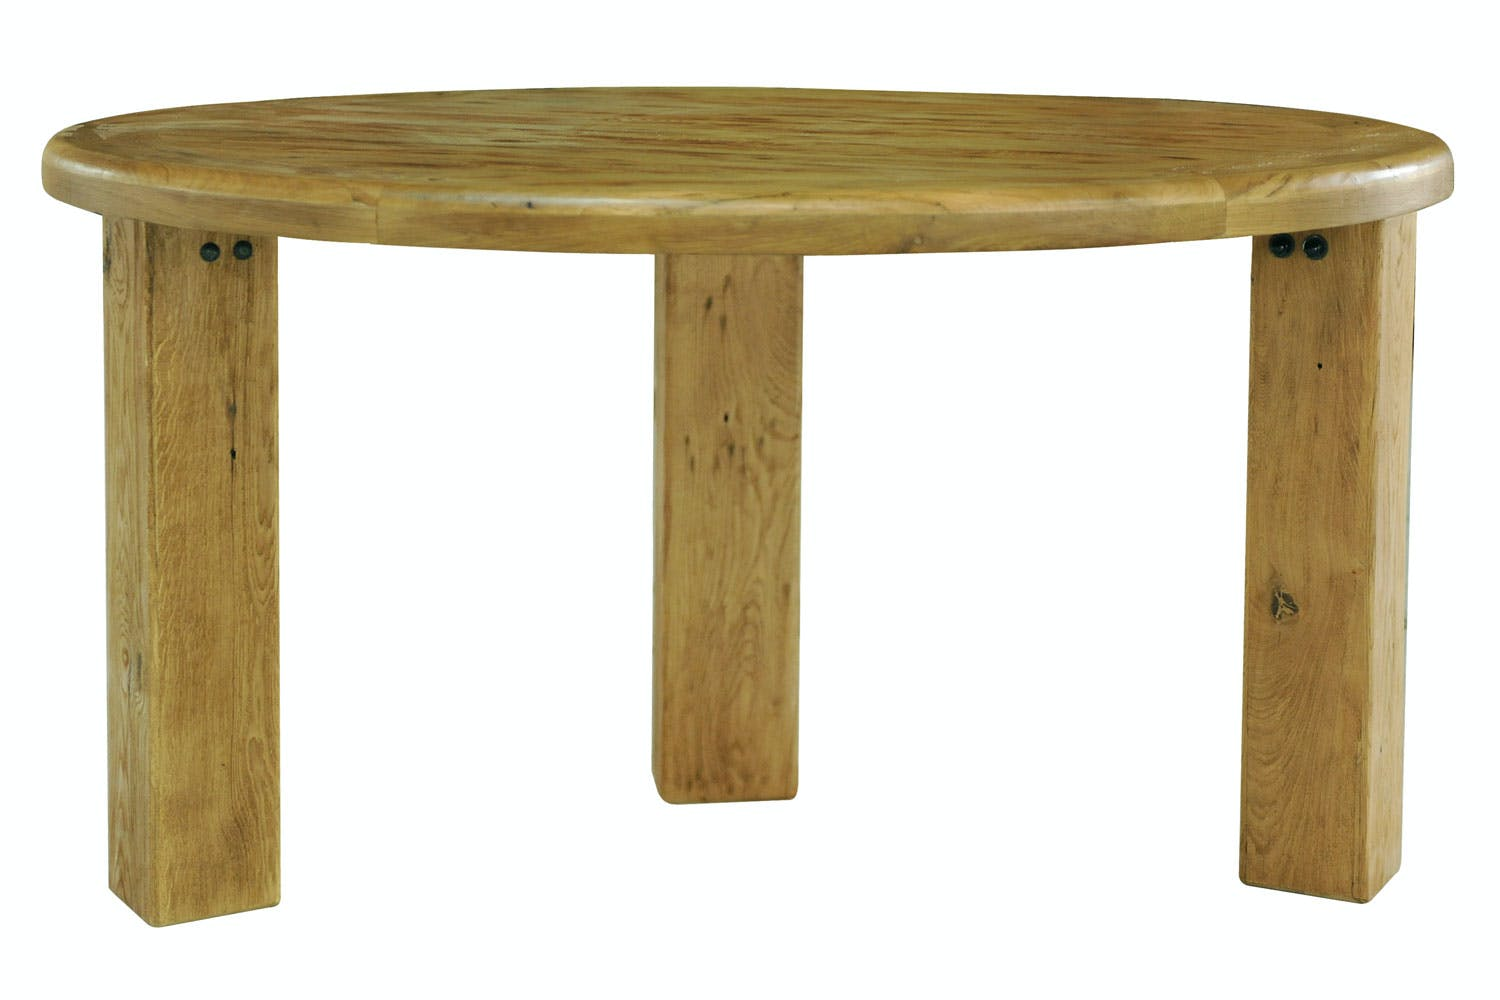 Kingston large round dining table harvey norman ireland for Large round dining table